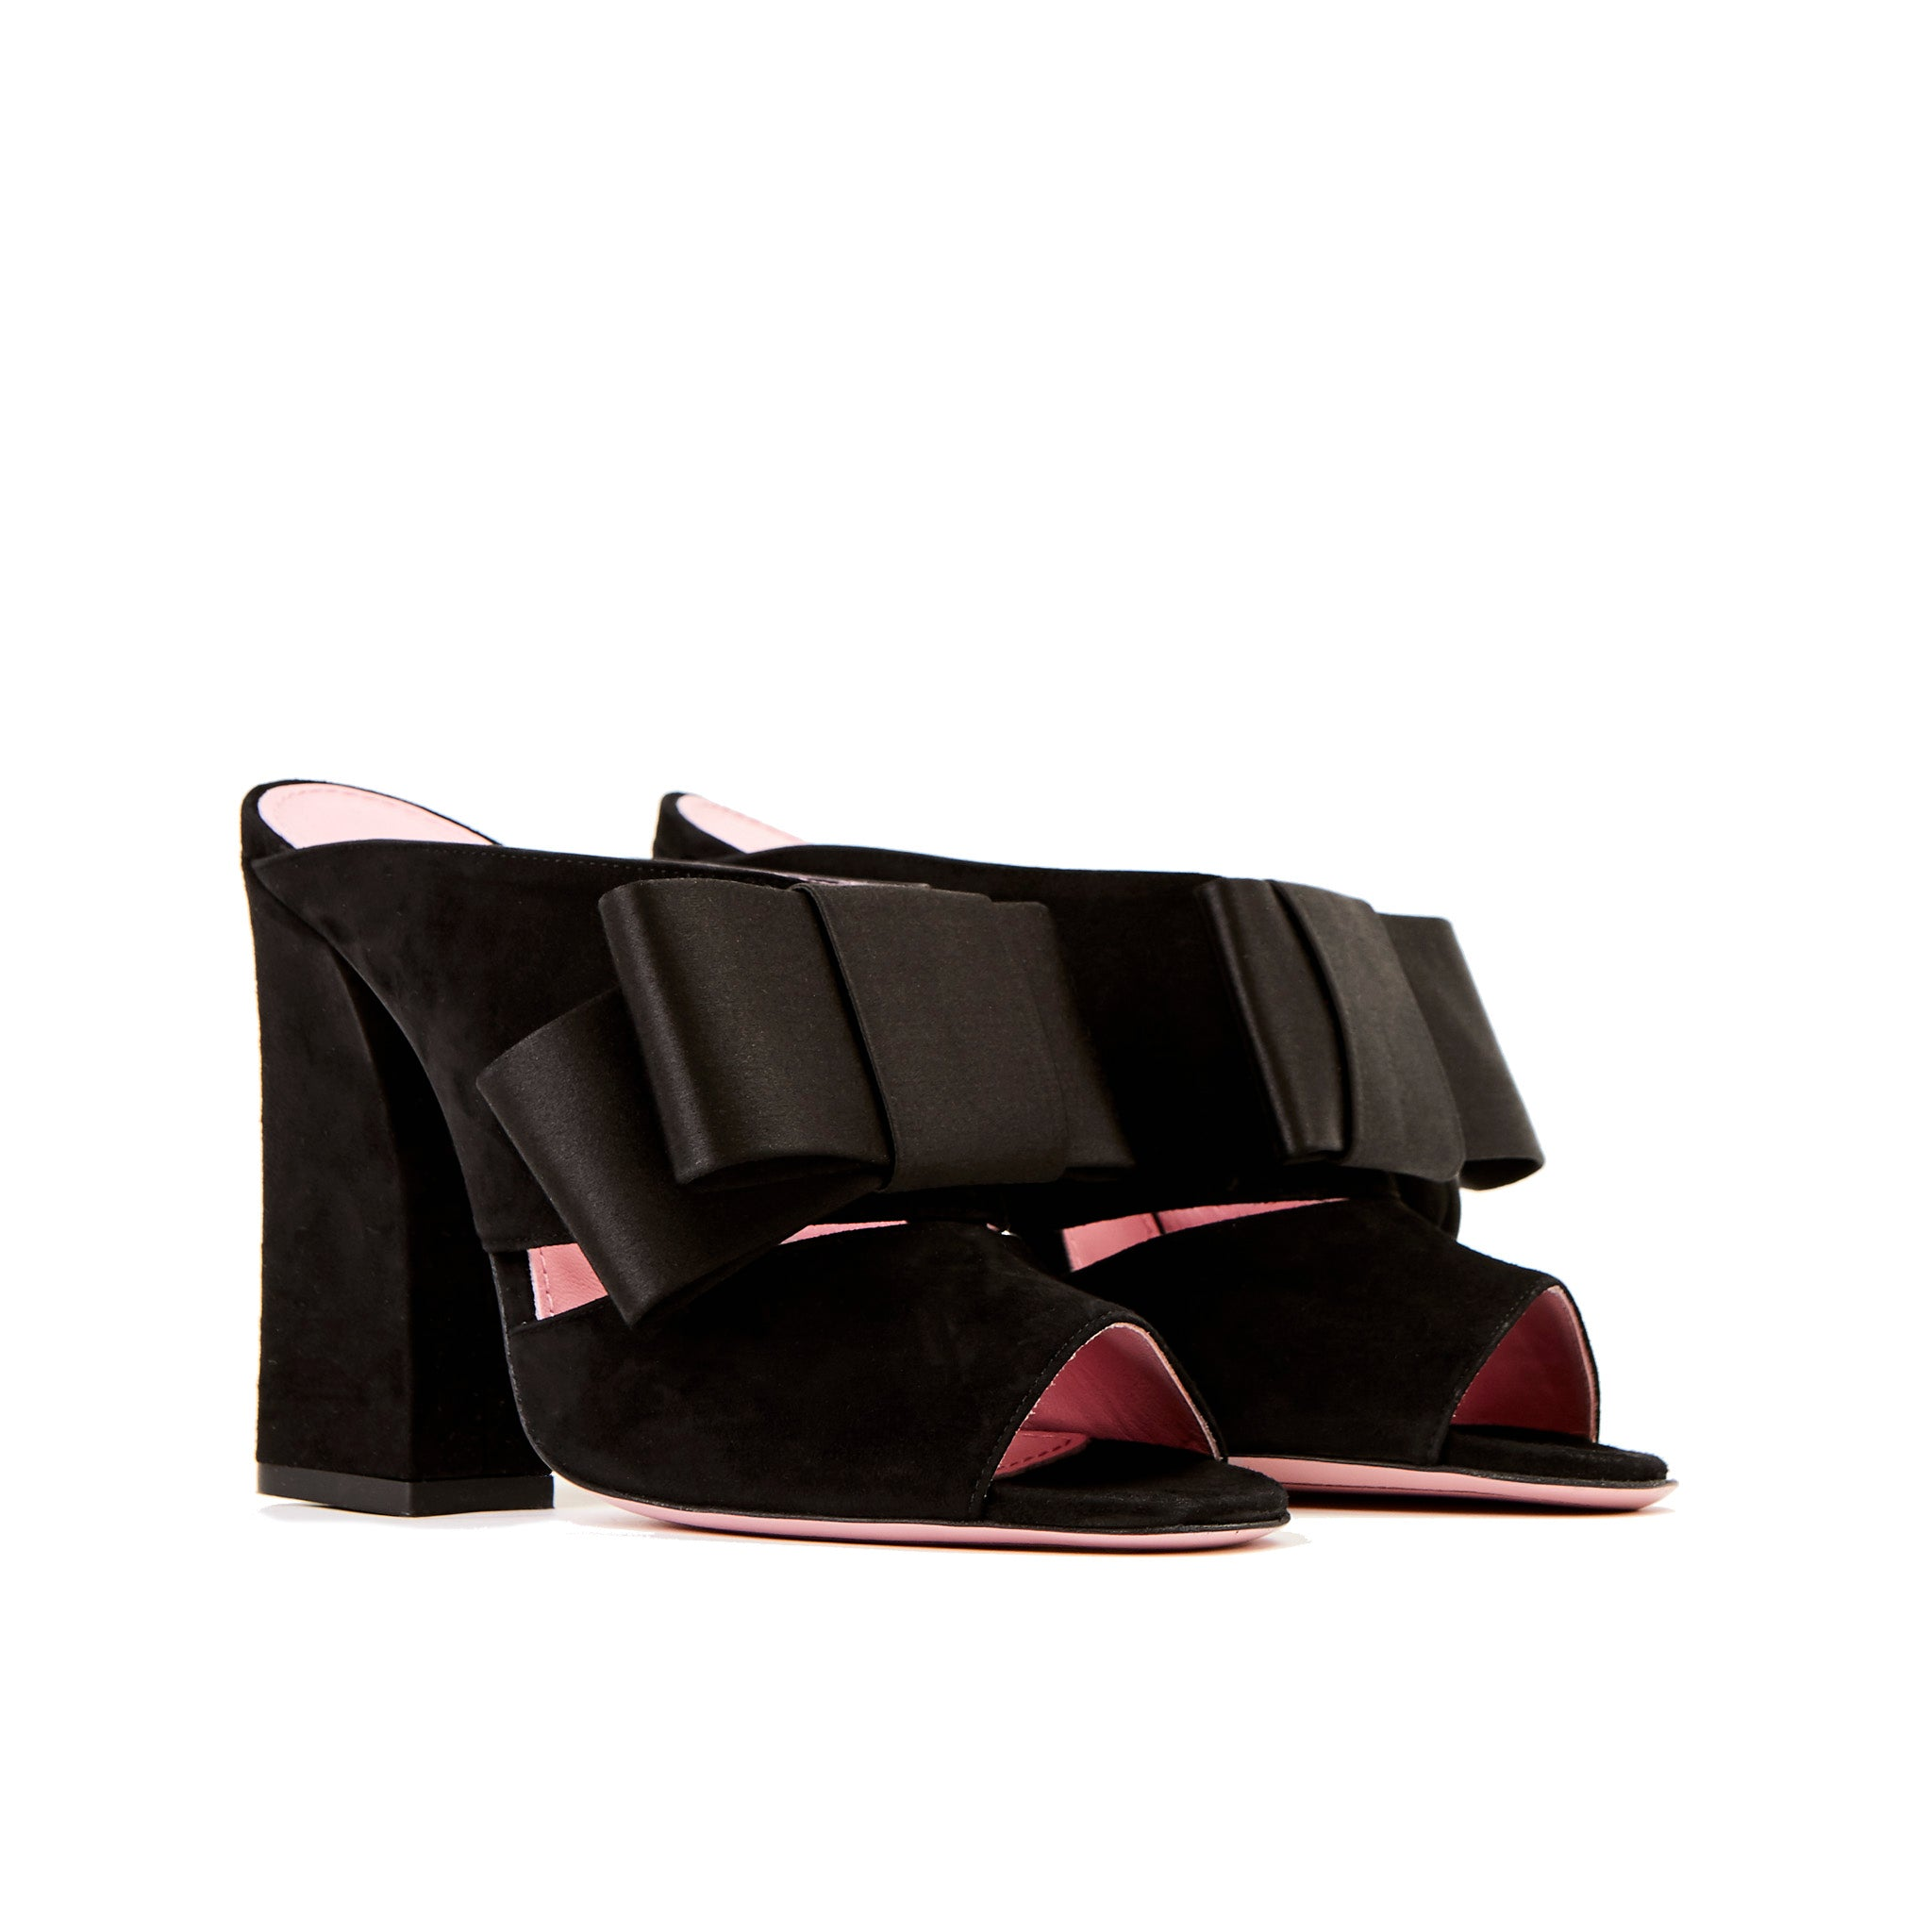 Phare High heel block heel mule with bow in black suede and satin 3/4 view